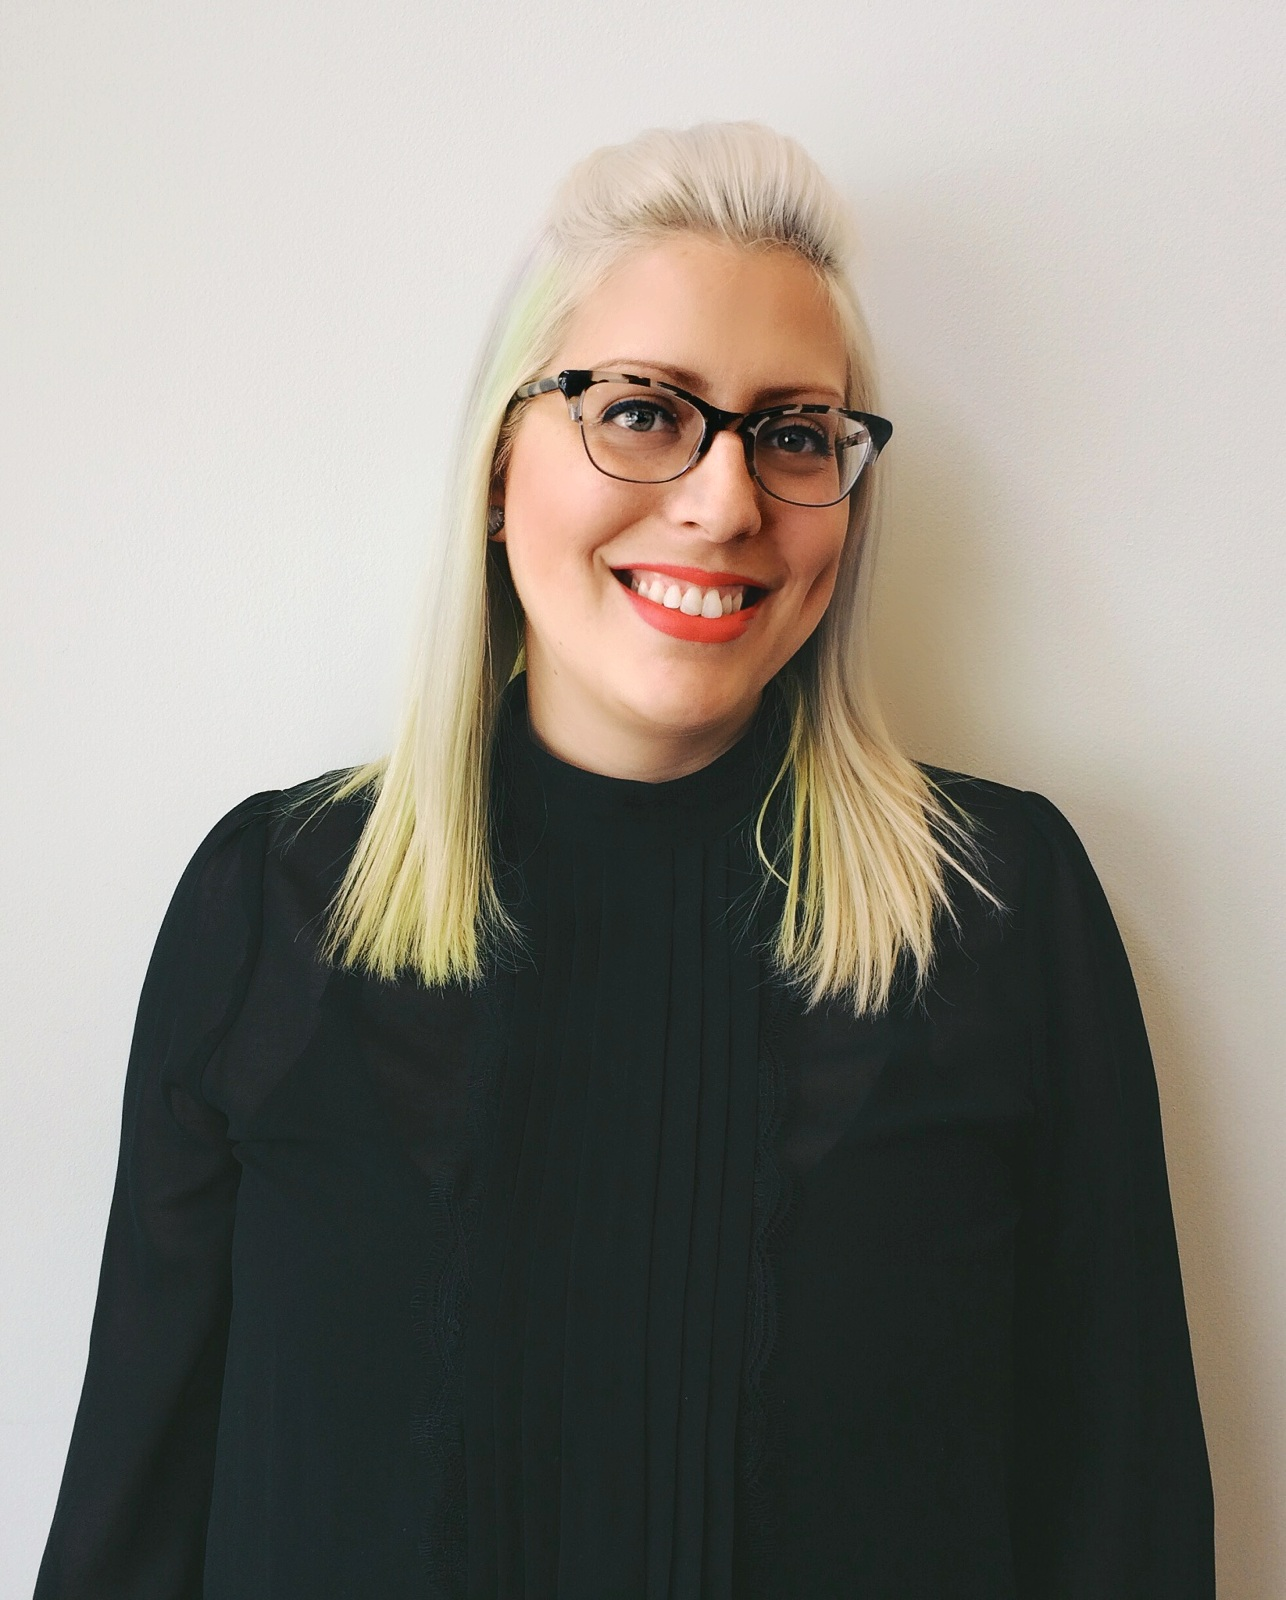 | Jay Morris |   Jay specializes in all of the latest color and cutting techniques and takes her time to listen to each of her clients as individuals to ensure the best possible result for each person's hair needs. She also offers her services for weddings and special events.